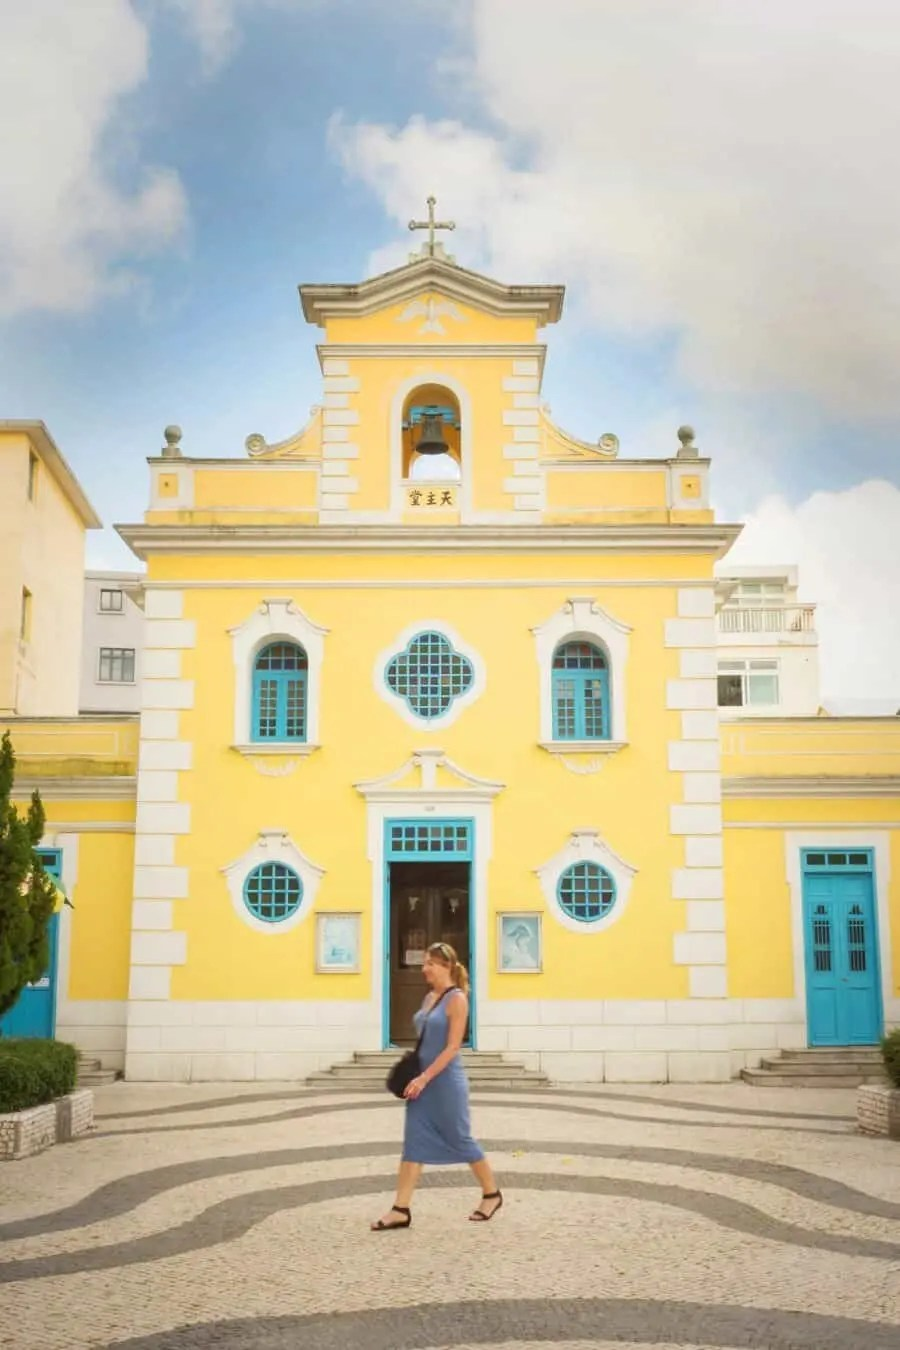 Coloane Macao - Macao photography locations